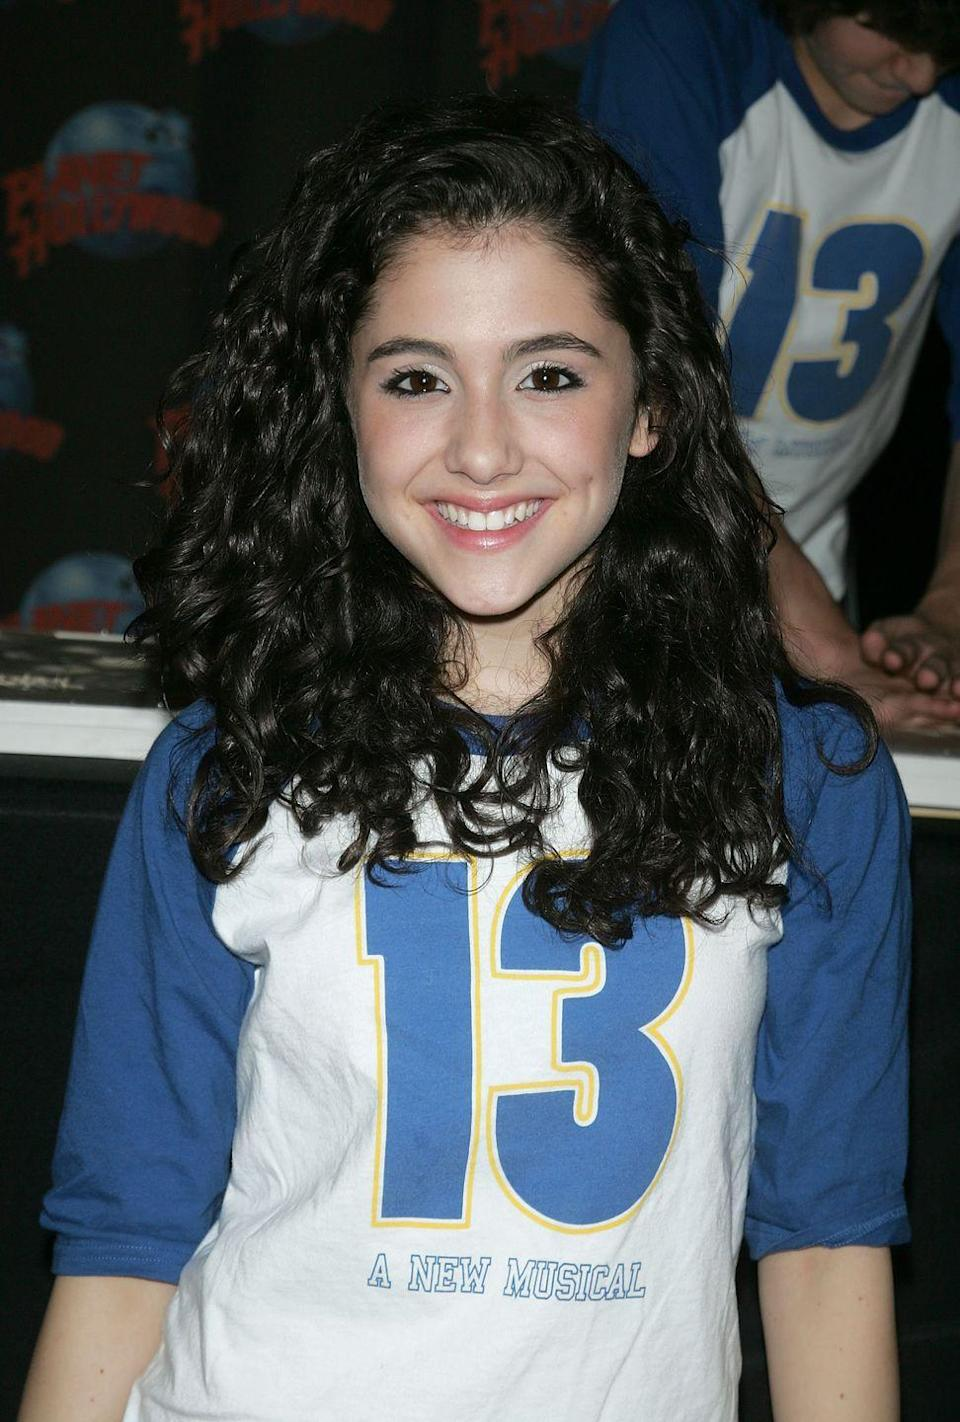 """<p>The pop princess is all over the radio today, but she actually hit the stage when she was 15 in the Broadway musical <em>13. </em>After that, she starred on <em>Victorious </em>and <em>Sam & Cat</em>, two Nickelodeon shows. After signing with Republic Records, Grande started releasing chart-toppers like """"Dangerous Woman"""" and """"Thank U, Next"""". </p>"""